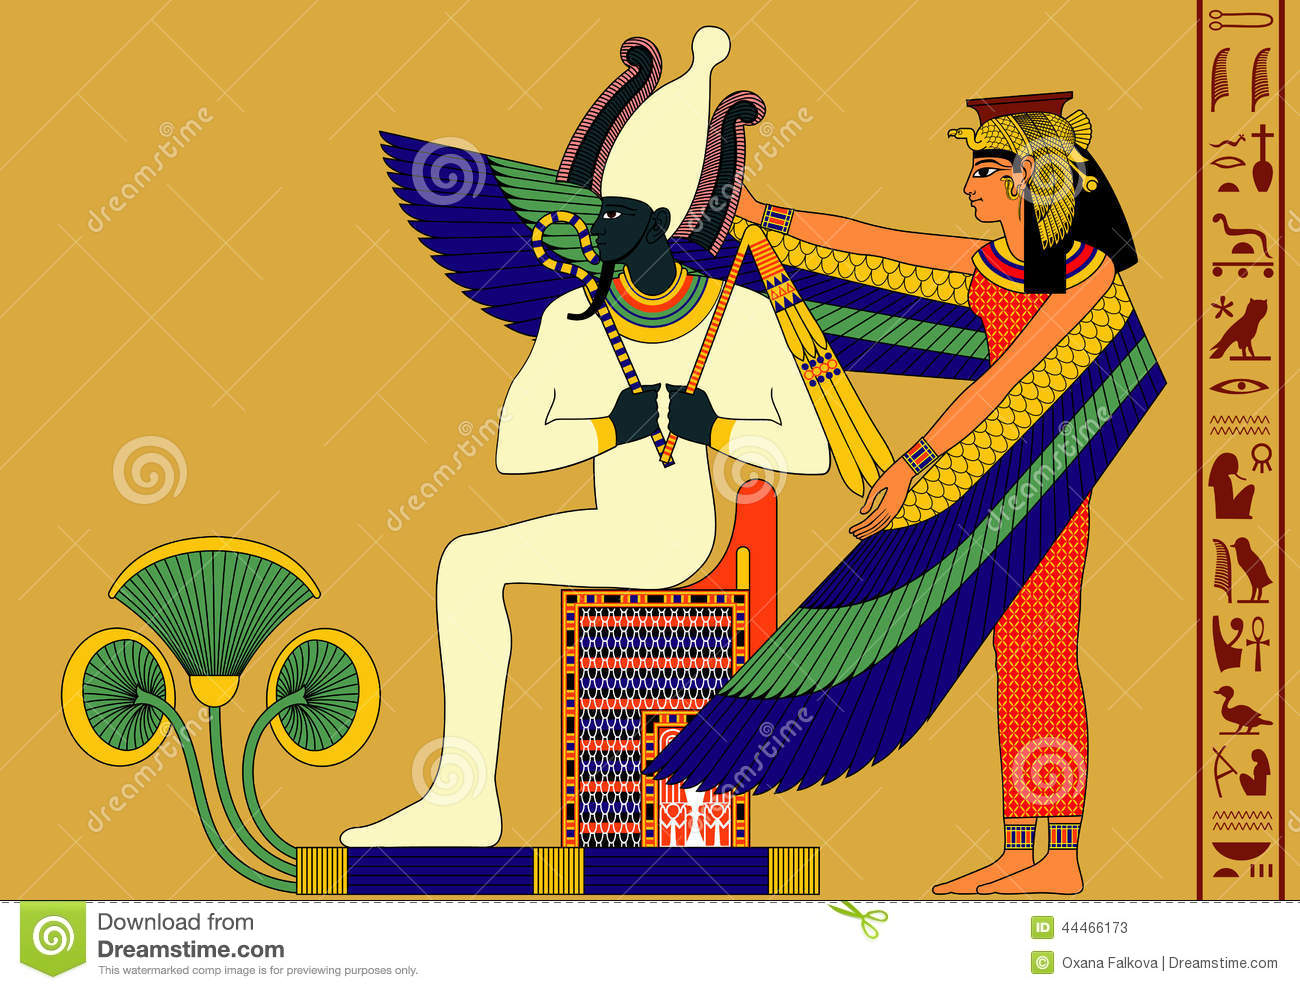 Osiris and isis stock vector illustration of history 44466173 osiris and isis biocorpaavc